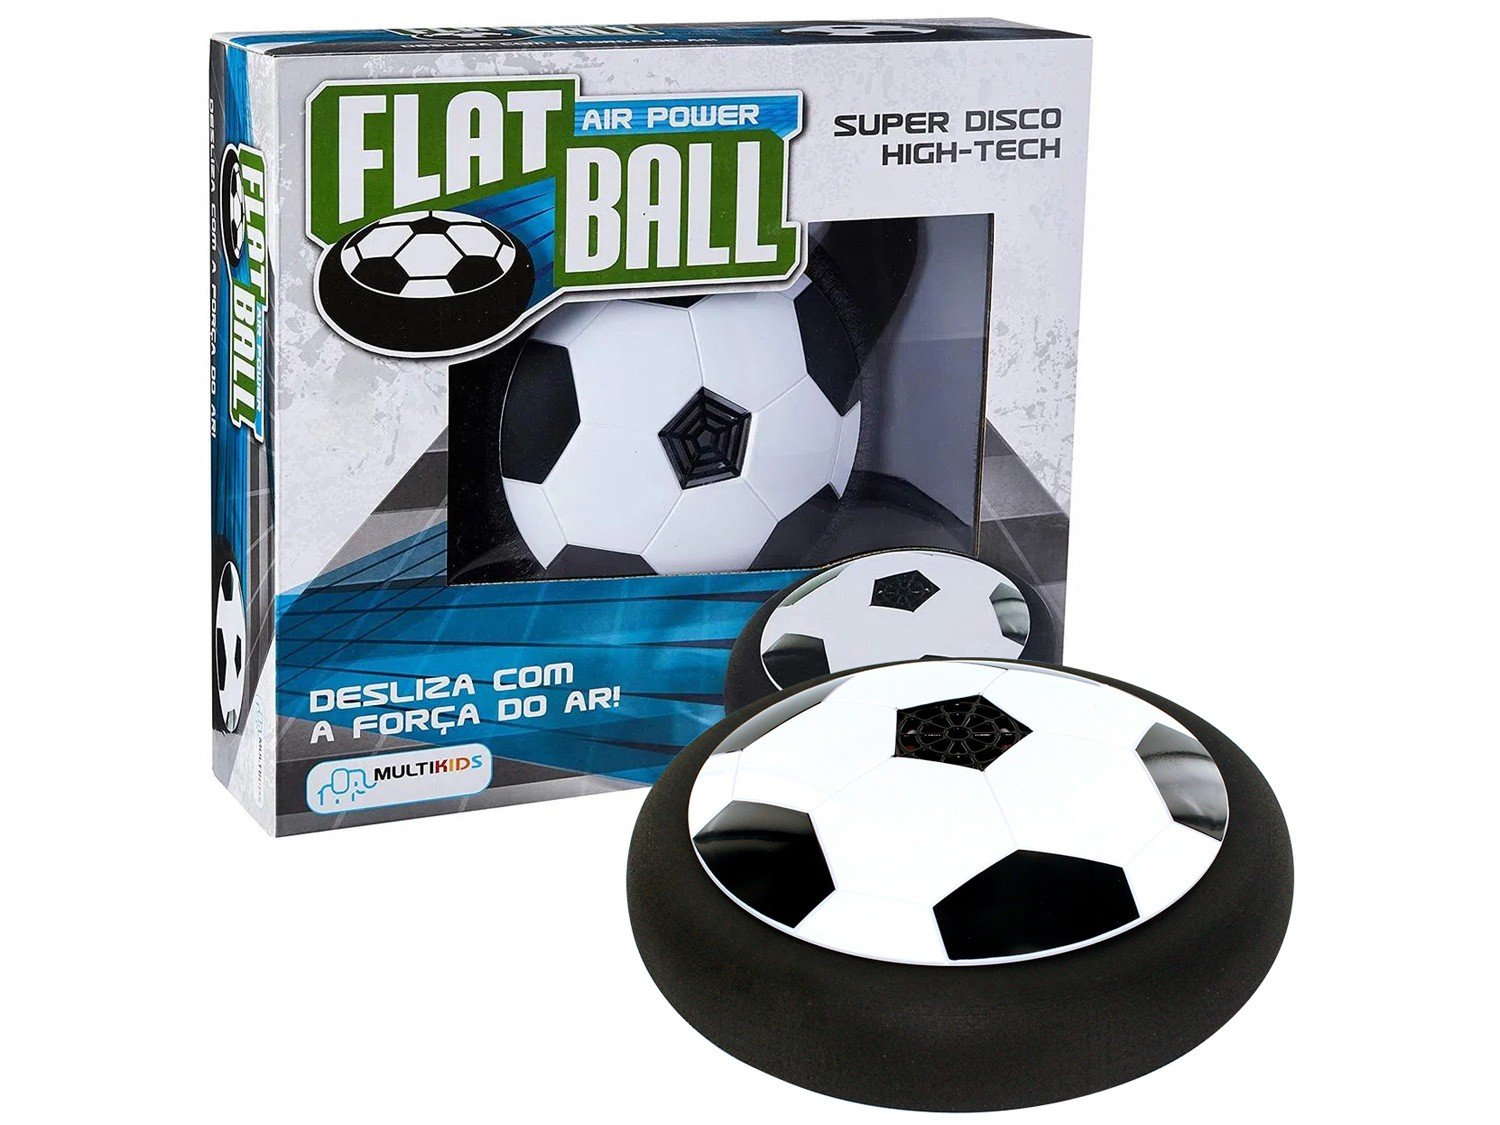 Flat Ball Multikids Air Power Preto e Branco - 3